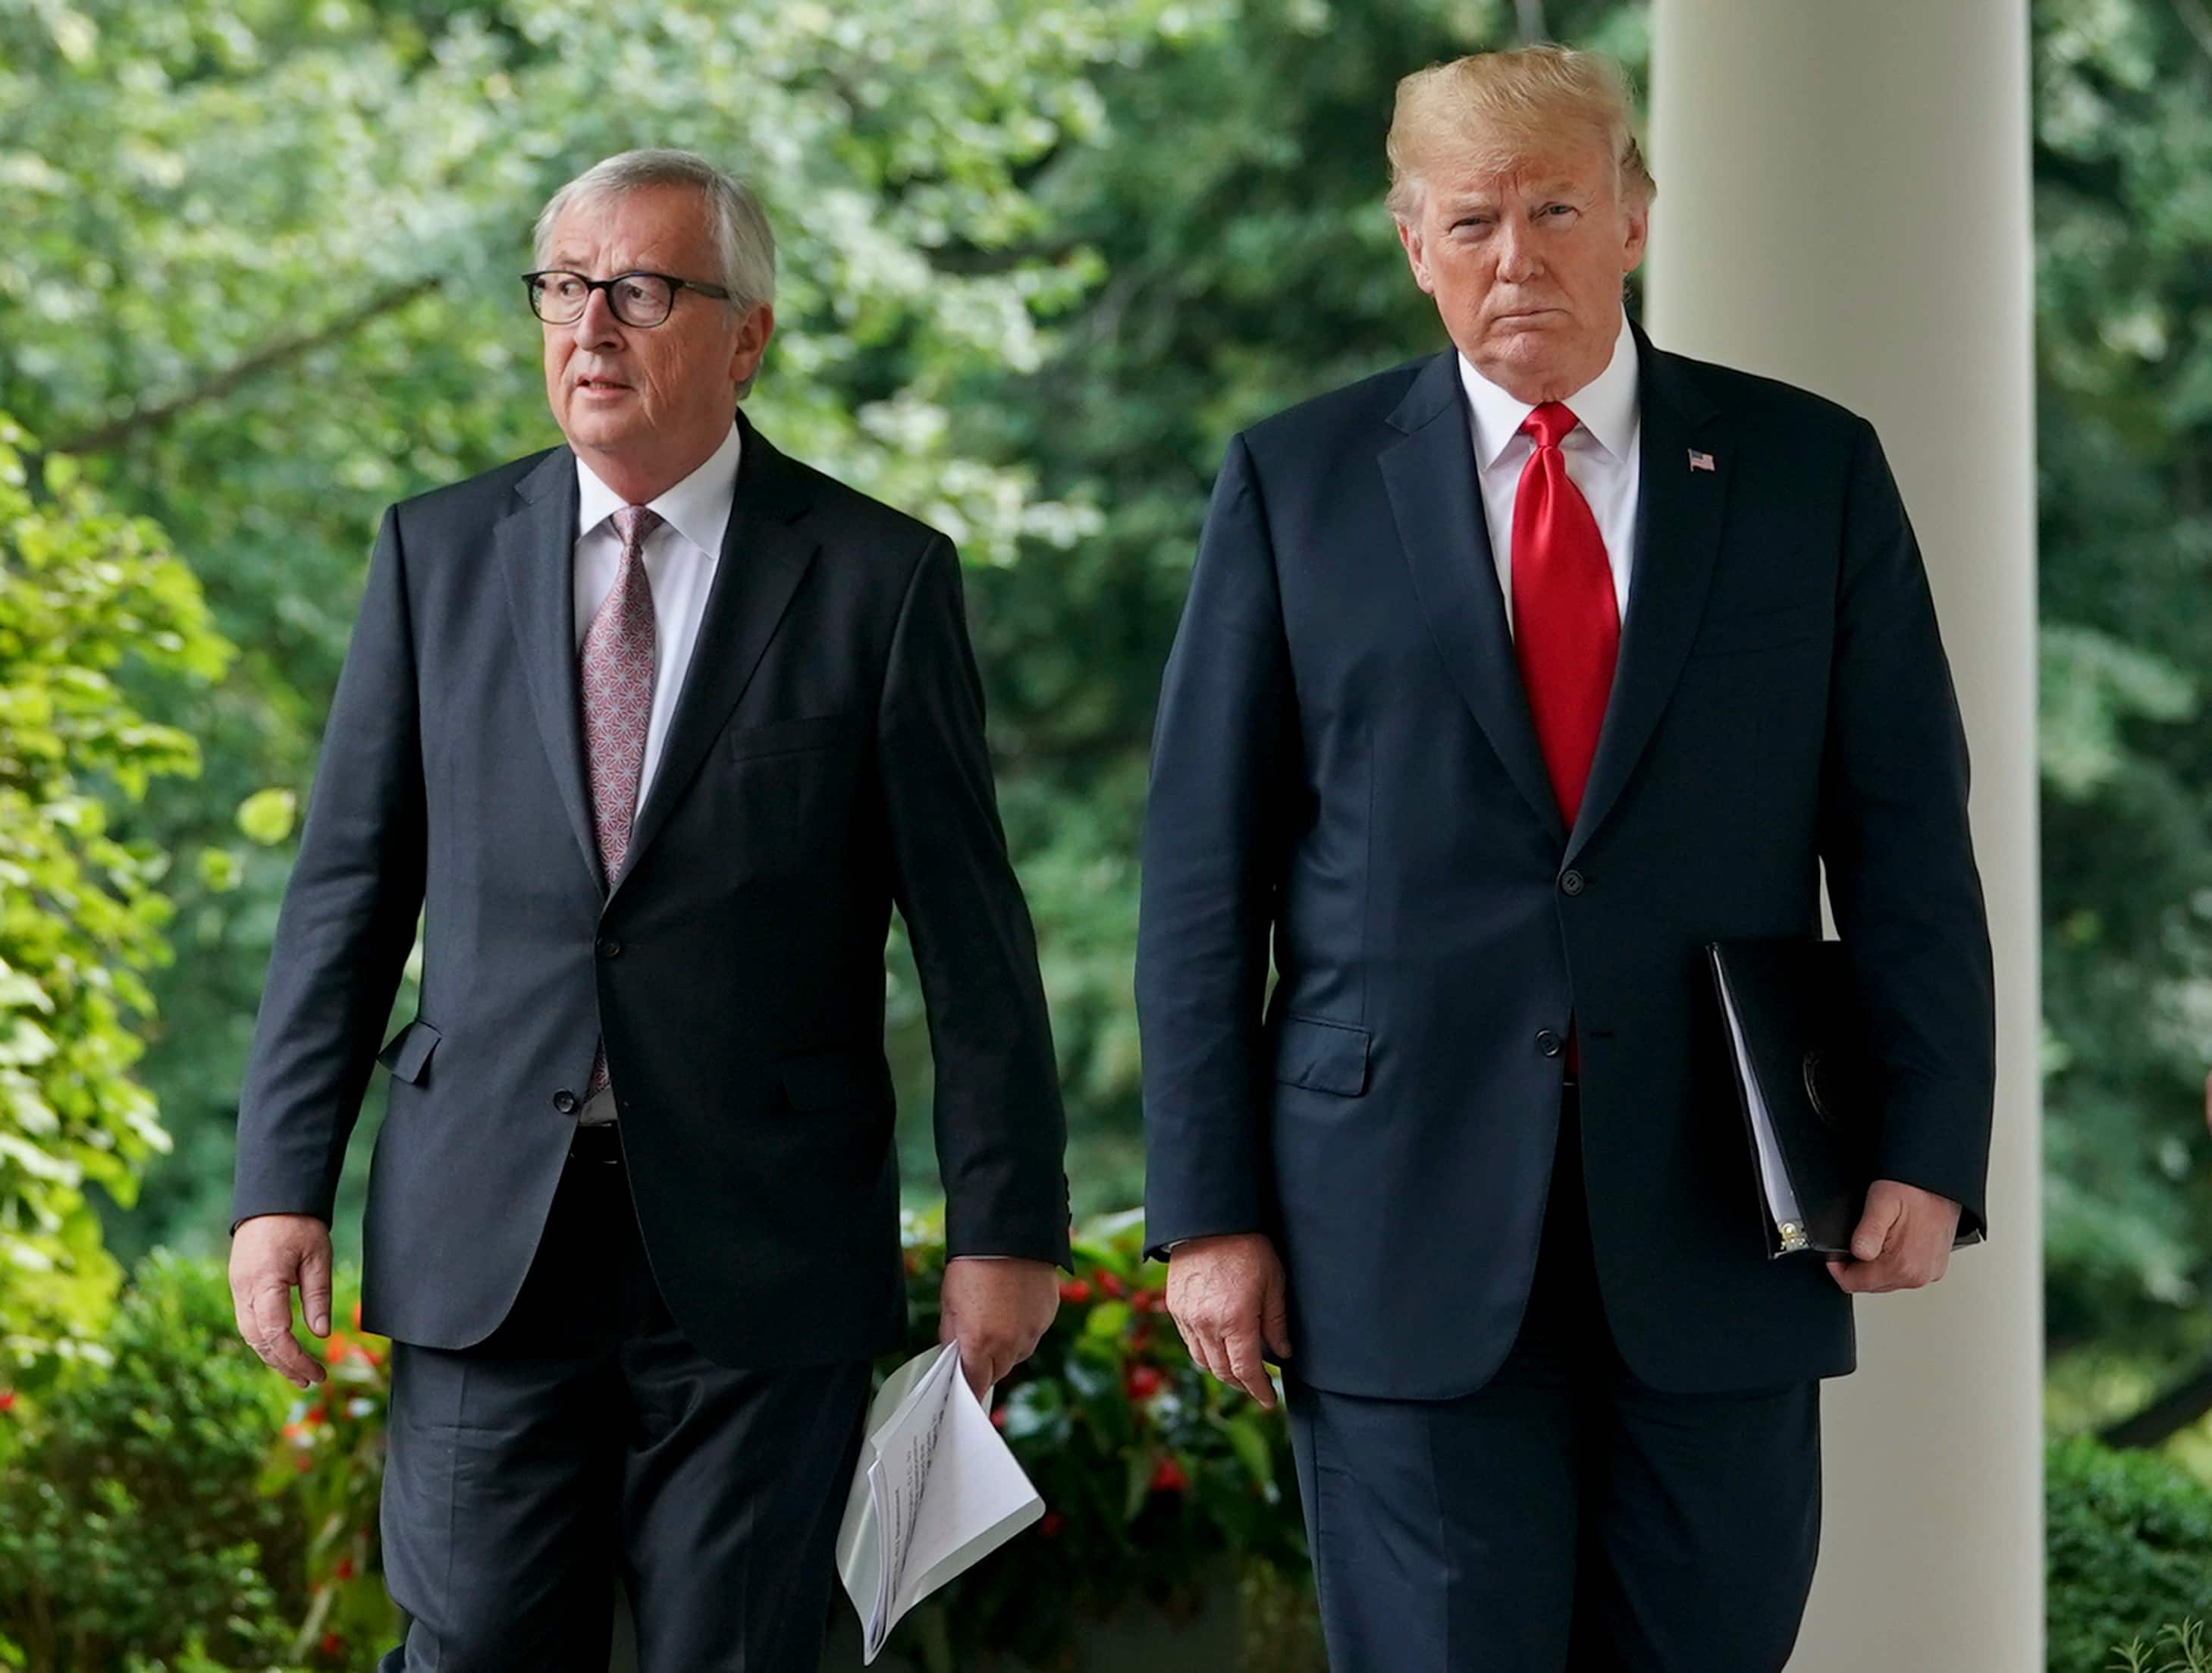 Trump, European Union's Juncker agree to pull back from trade war to ease tension